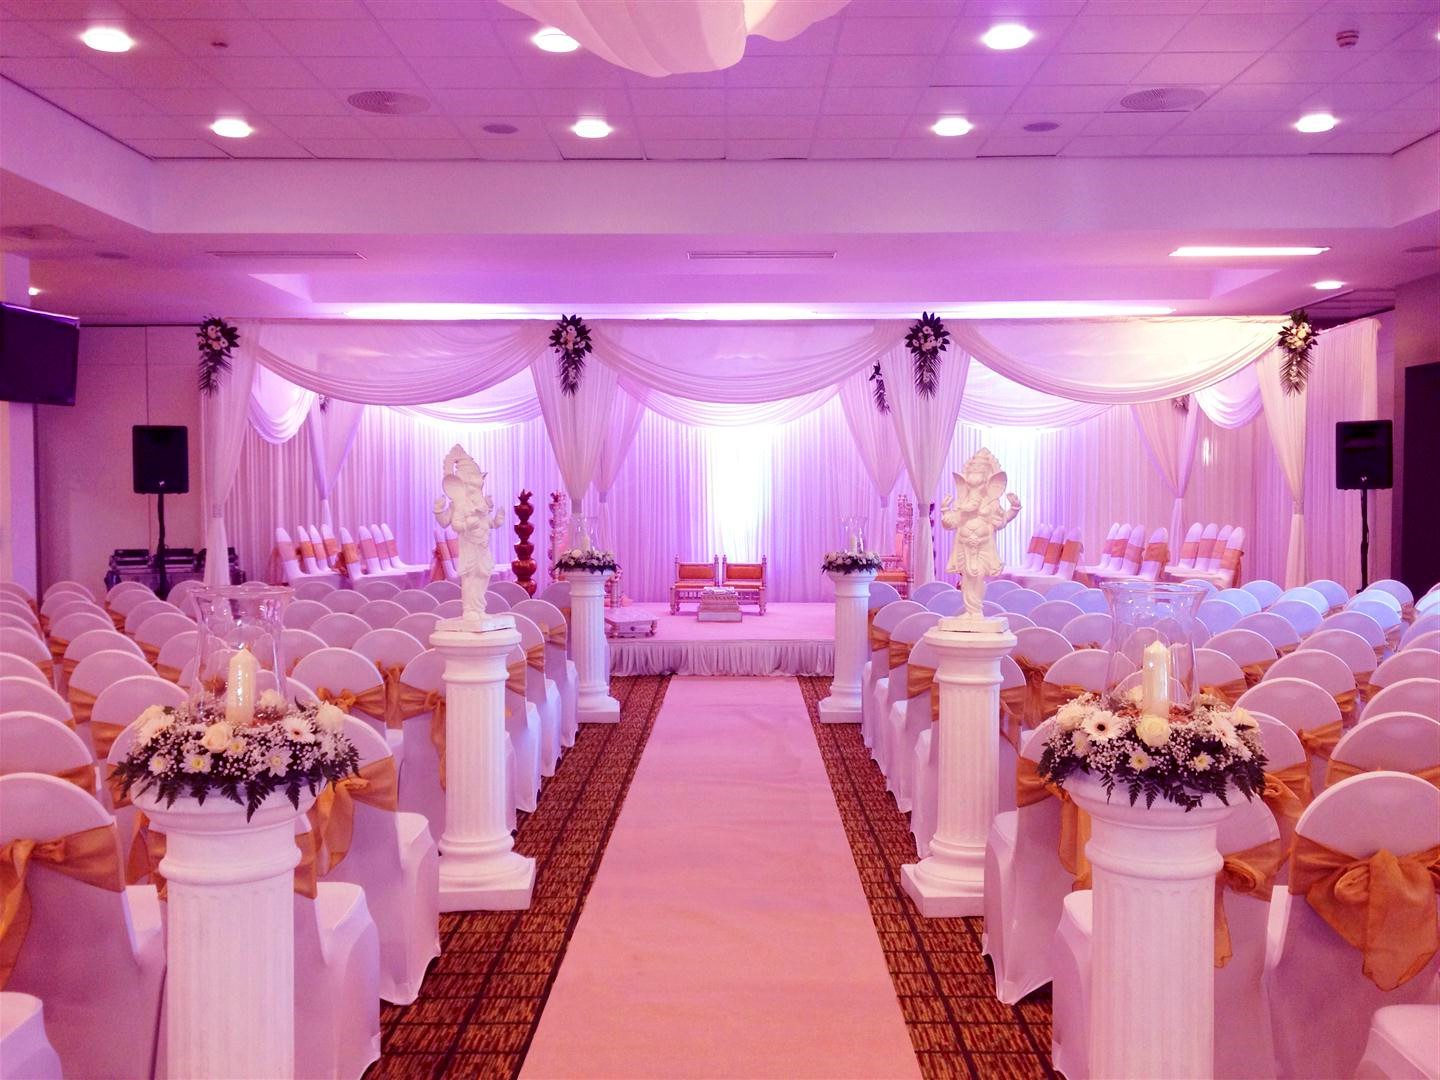 Marvelous purple wedding decoration all about wedding for Wedding banquet decorations